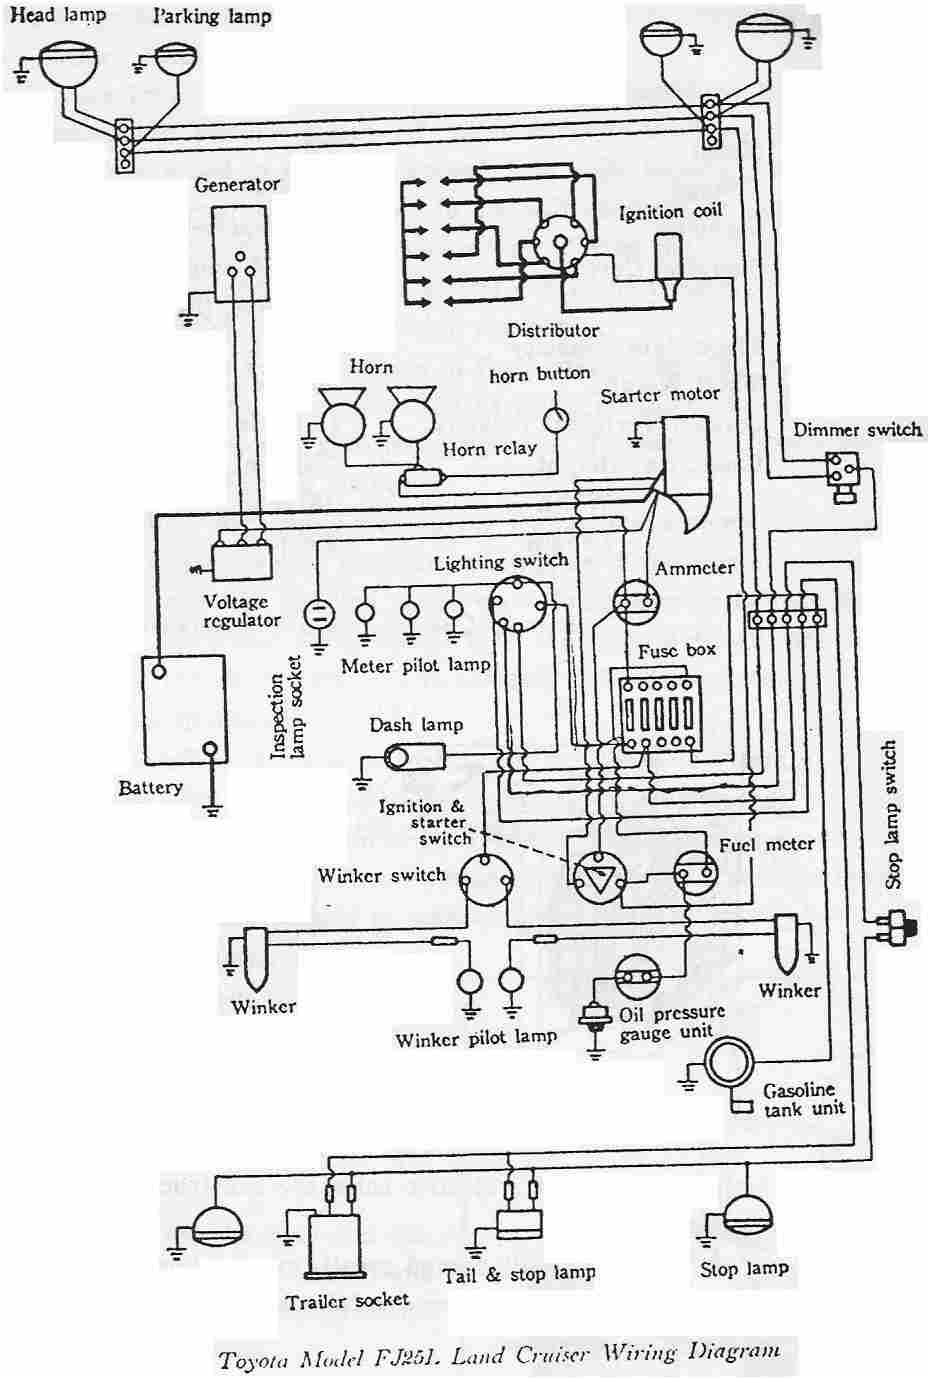 small resolution of toyota land cruiser fj25 electrical wiring diagram wiring diagram for toro proline 724